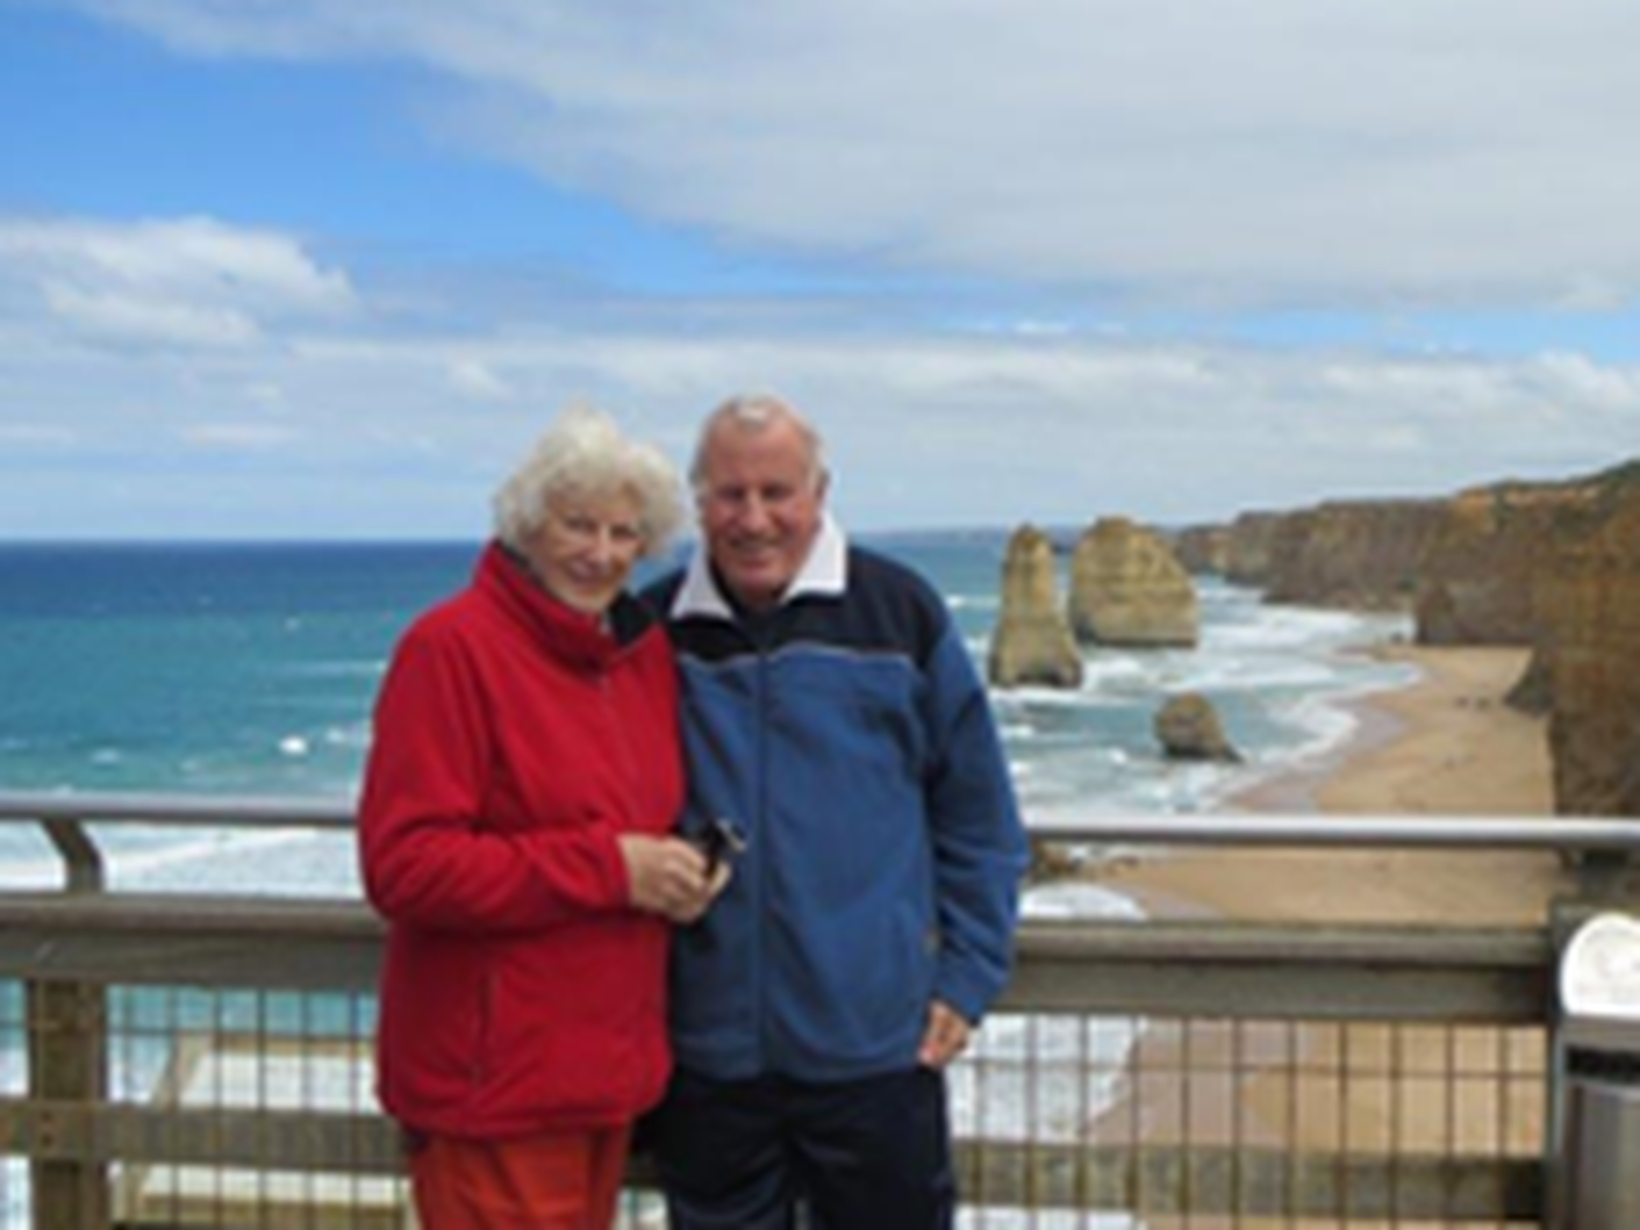 Graeme /roz & Roz from North Haven, New South Wales, Australia